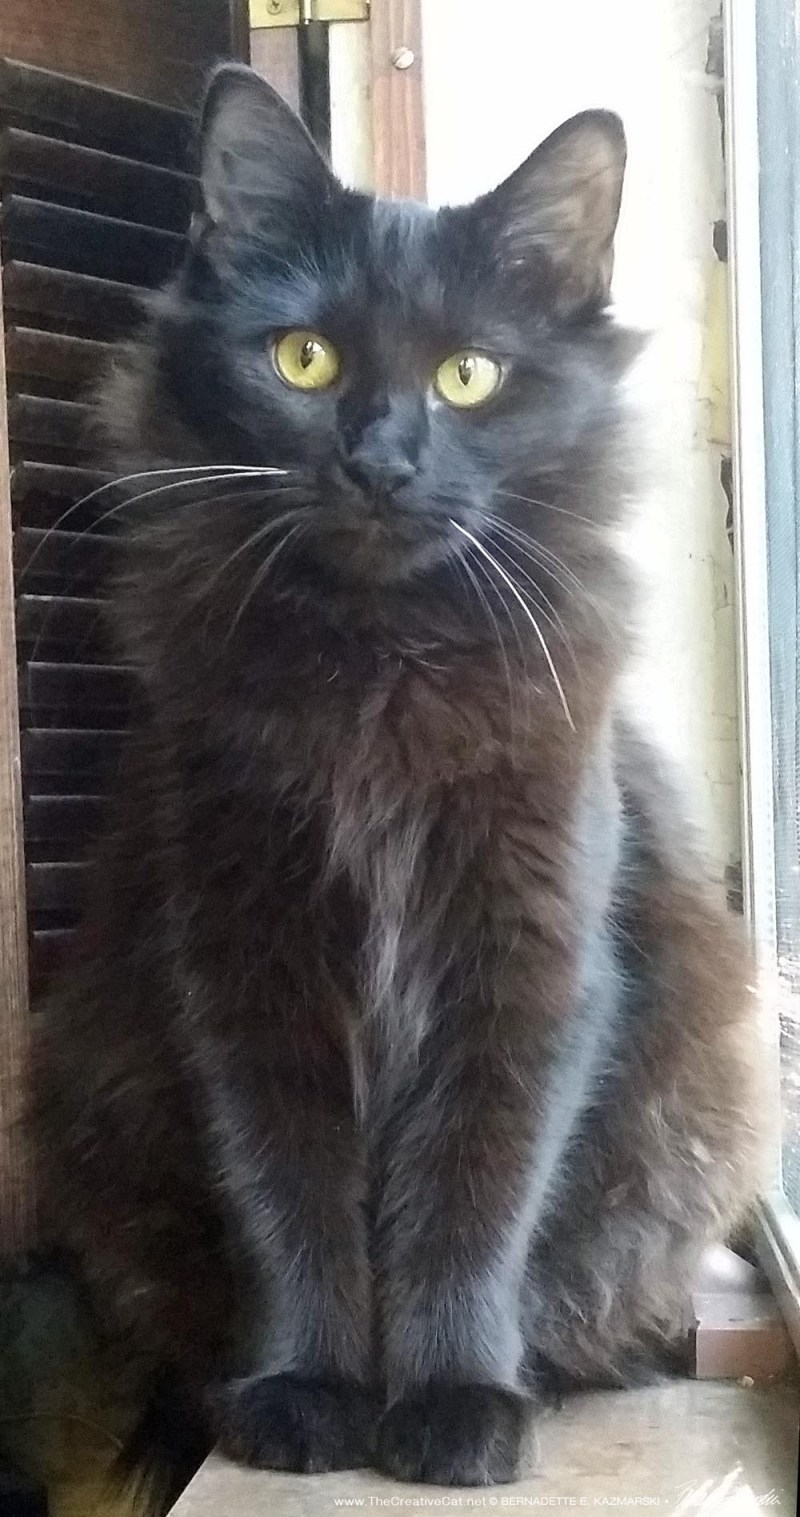 Alvina has gone to her forever home!